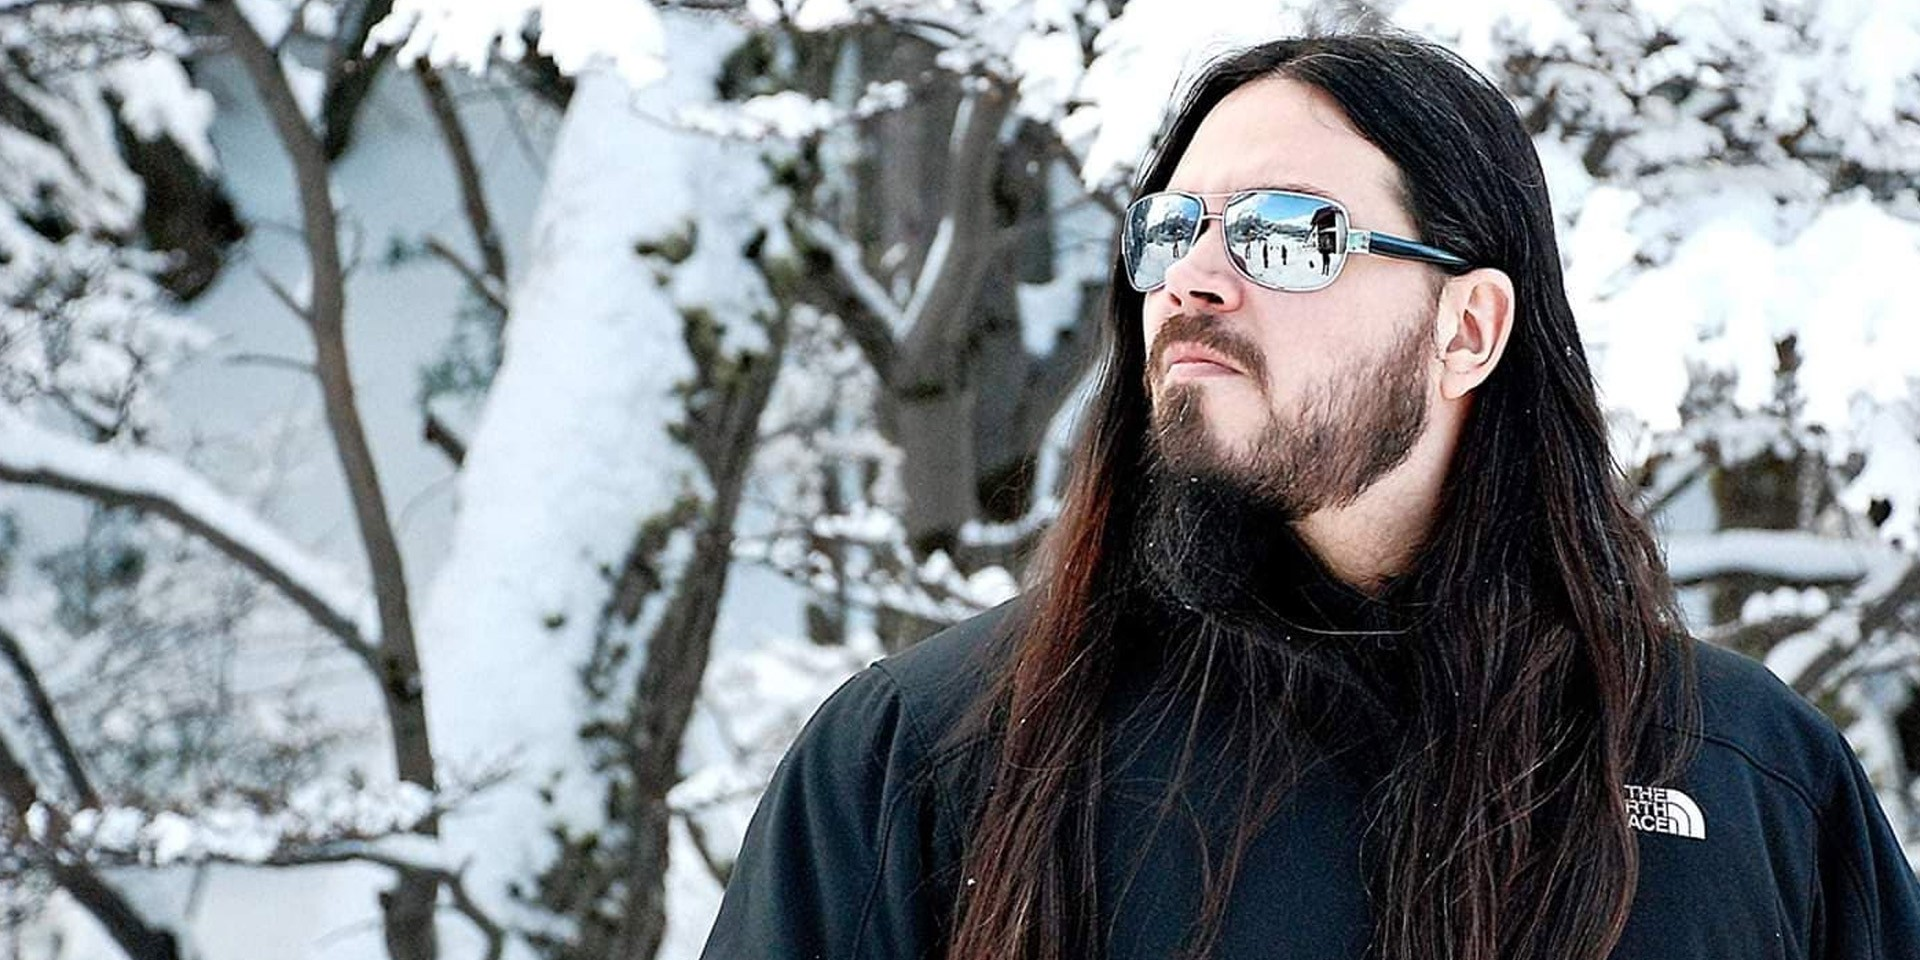 Slayer, Kreator, Dimmu Borgir visual artist Marcelo Vasco talks collab with Valley Of Chrome